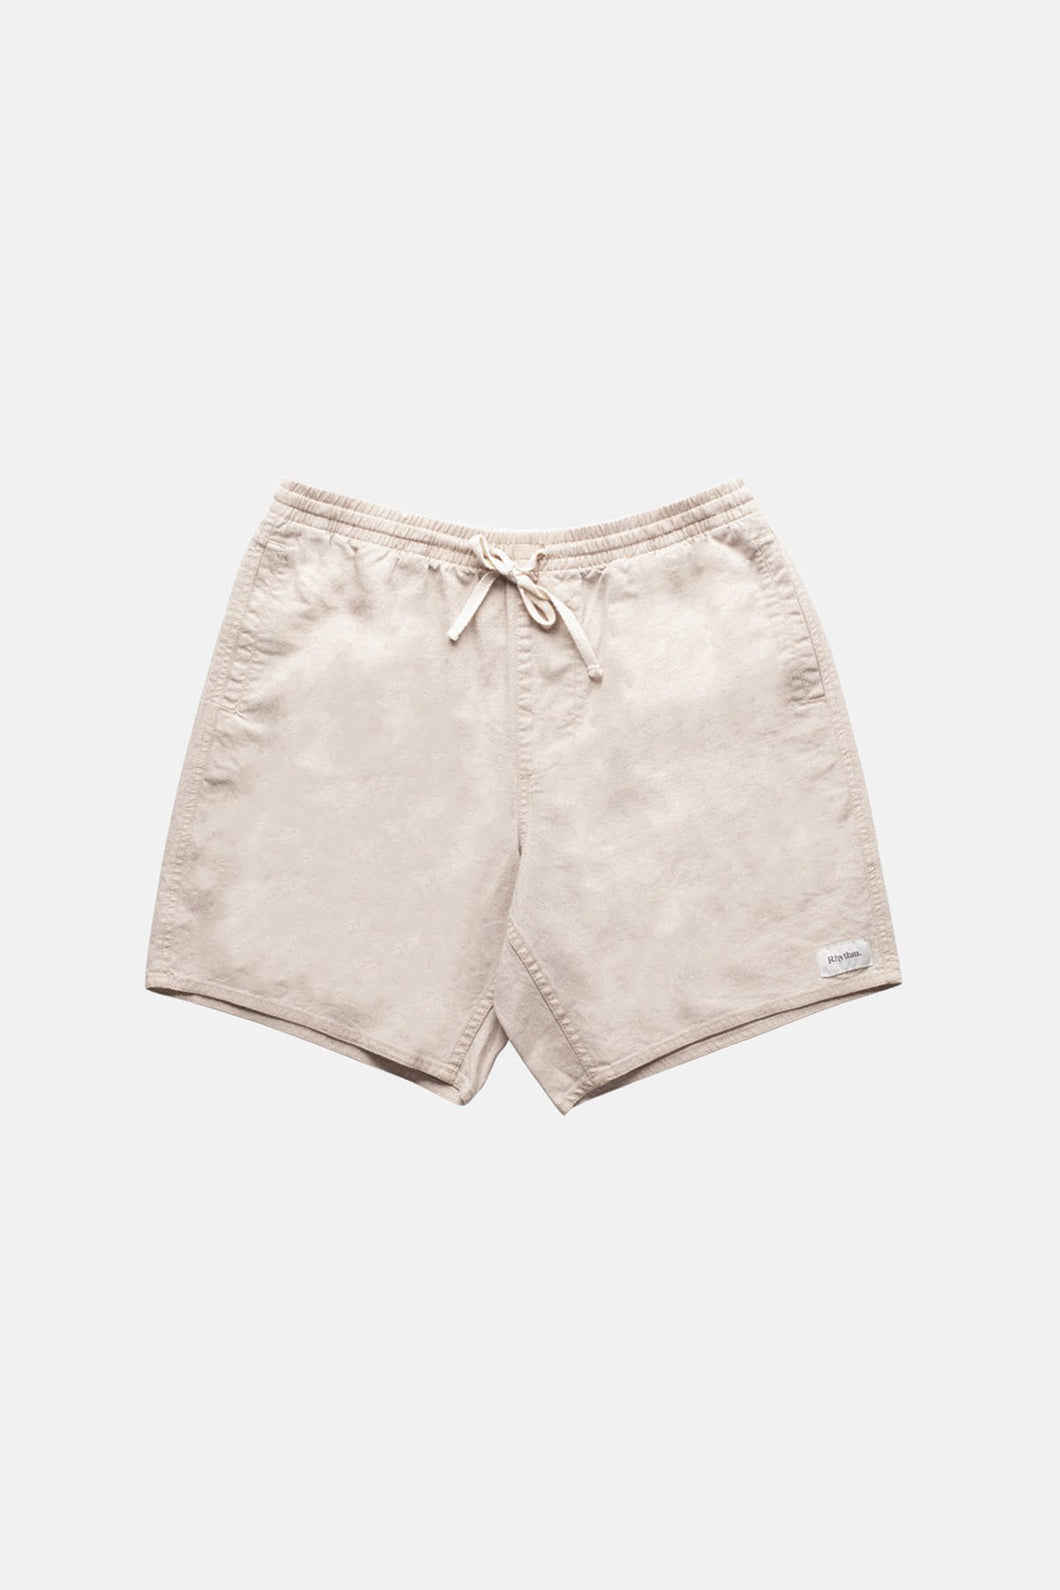 Rhythm - Essential Linen Jam Beach Short Bone